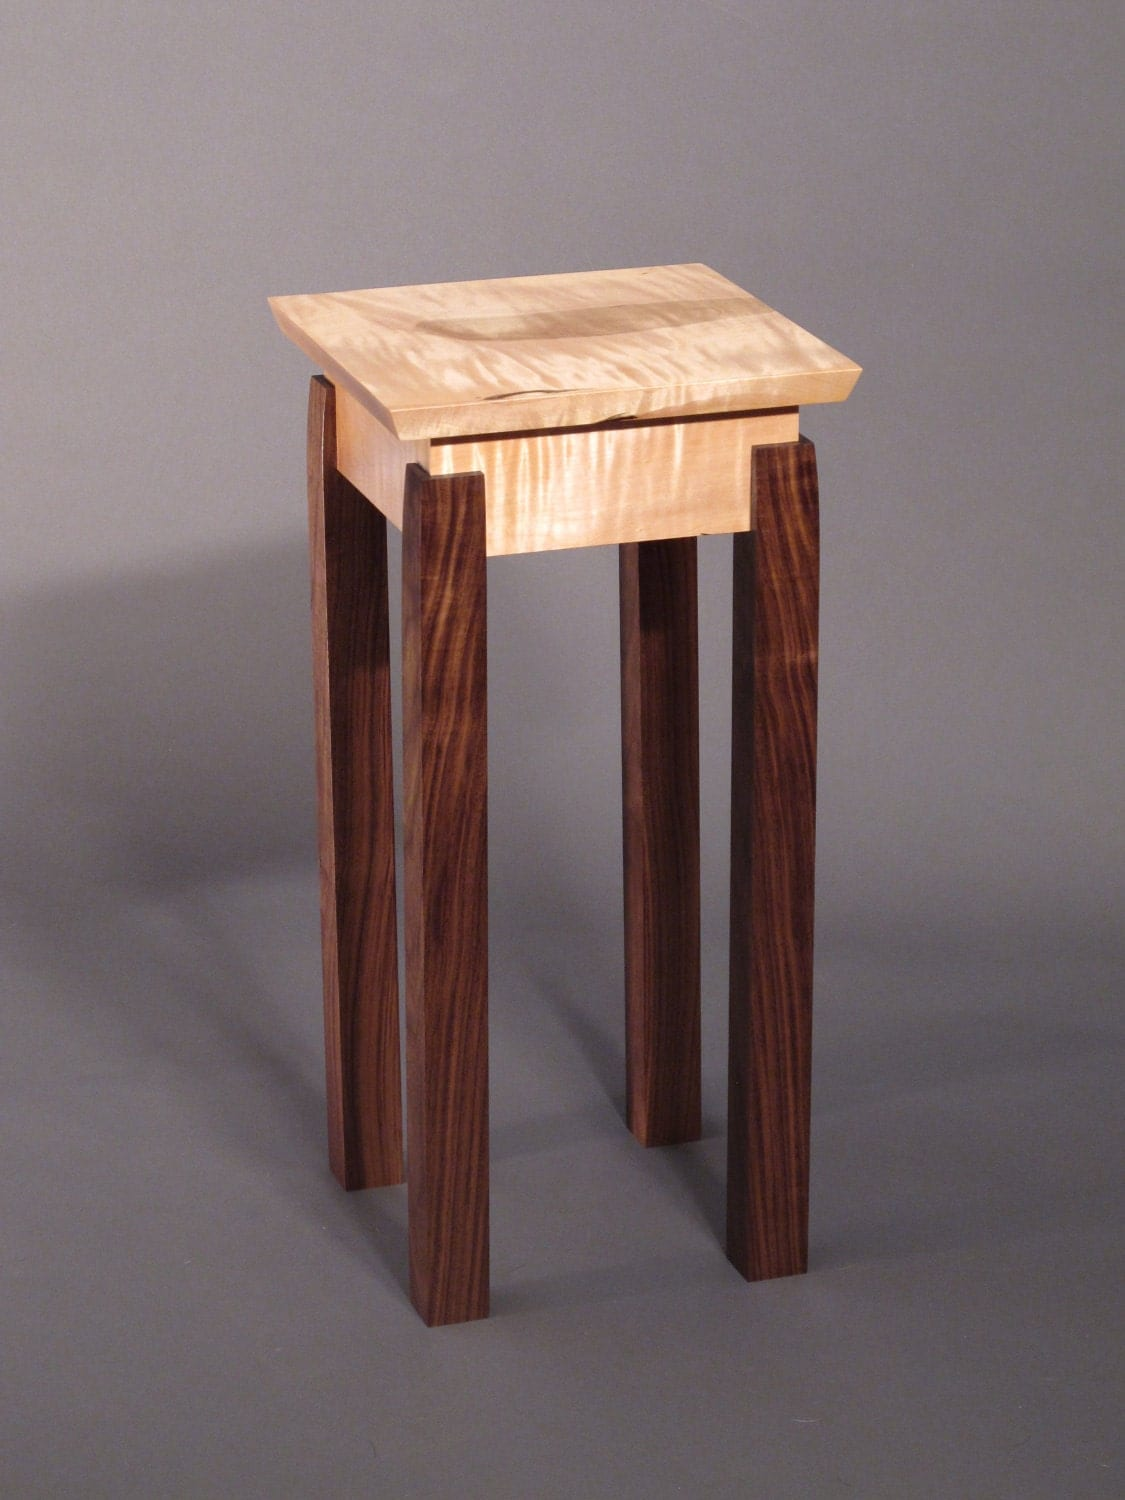 Accent table small end table handmade custom wood furniture for Small wood end table